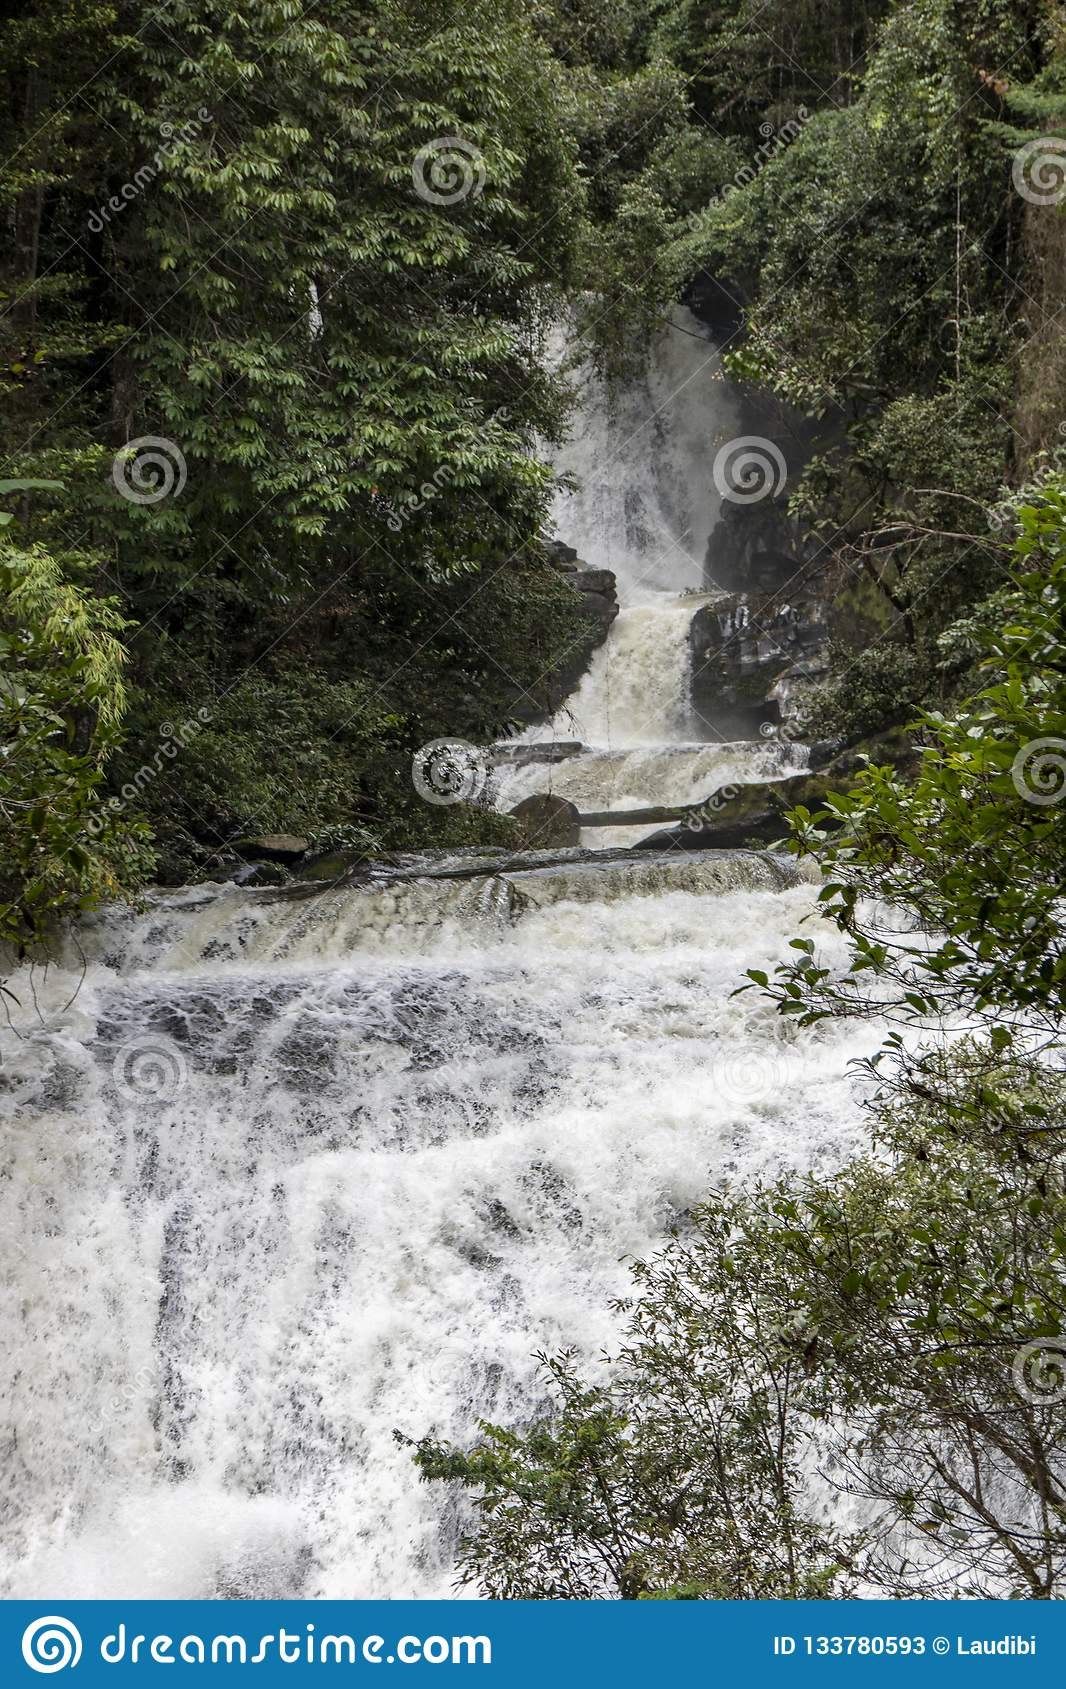 Sirothanwaterval